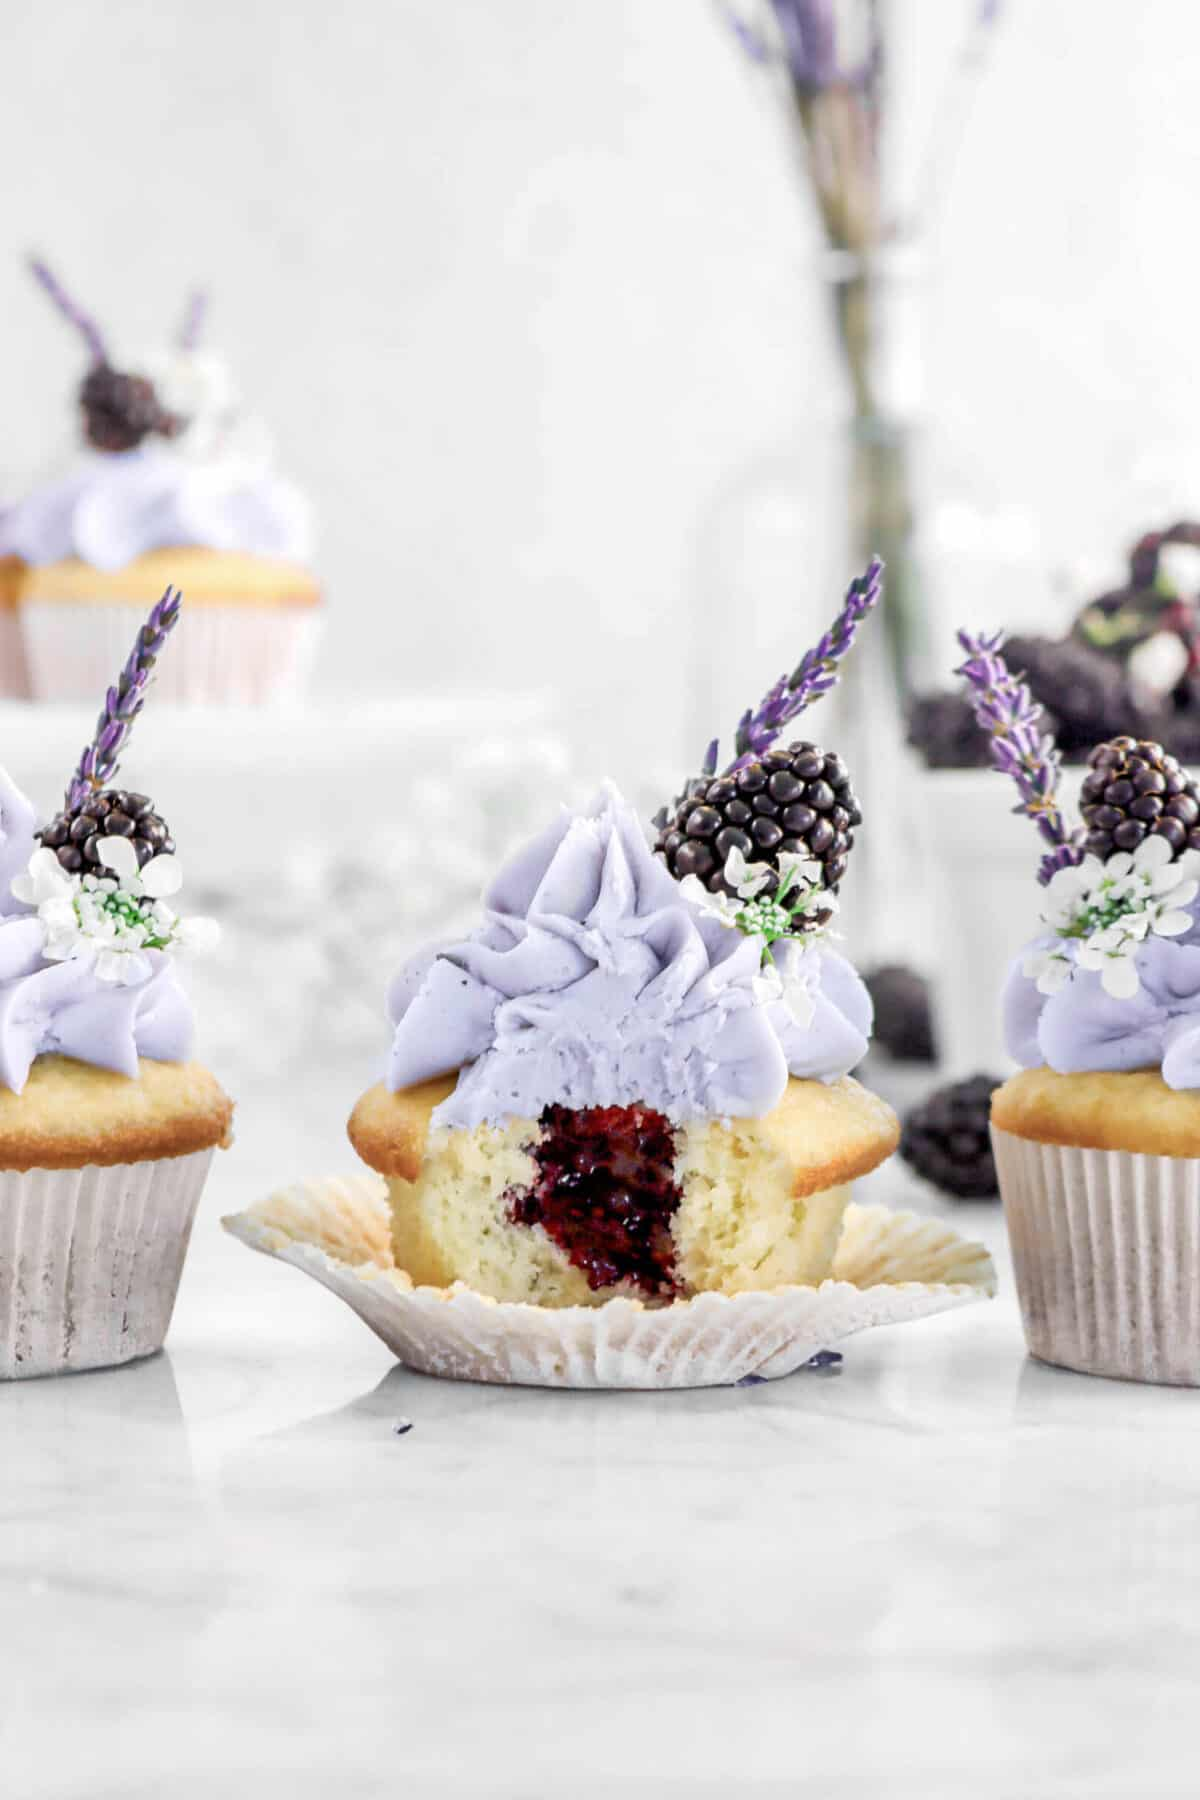 three cupcakes in a line with a bite taken out of one with flowers, blackberries, and more cupcakes behind